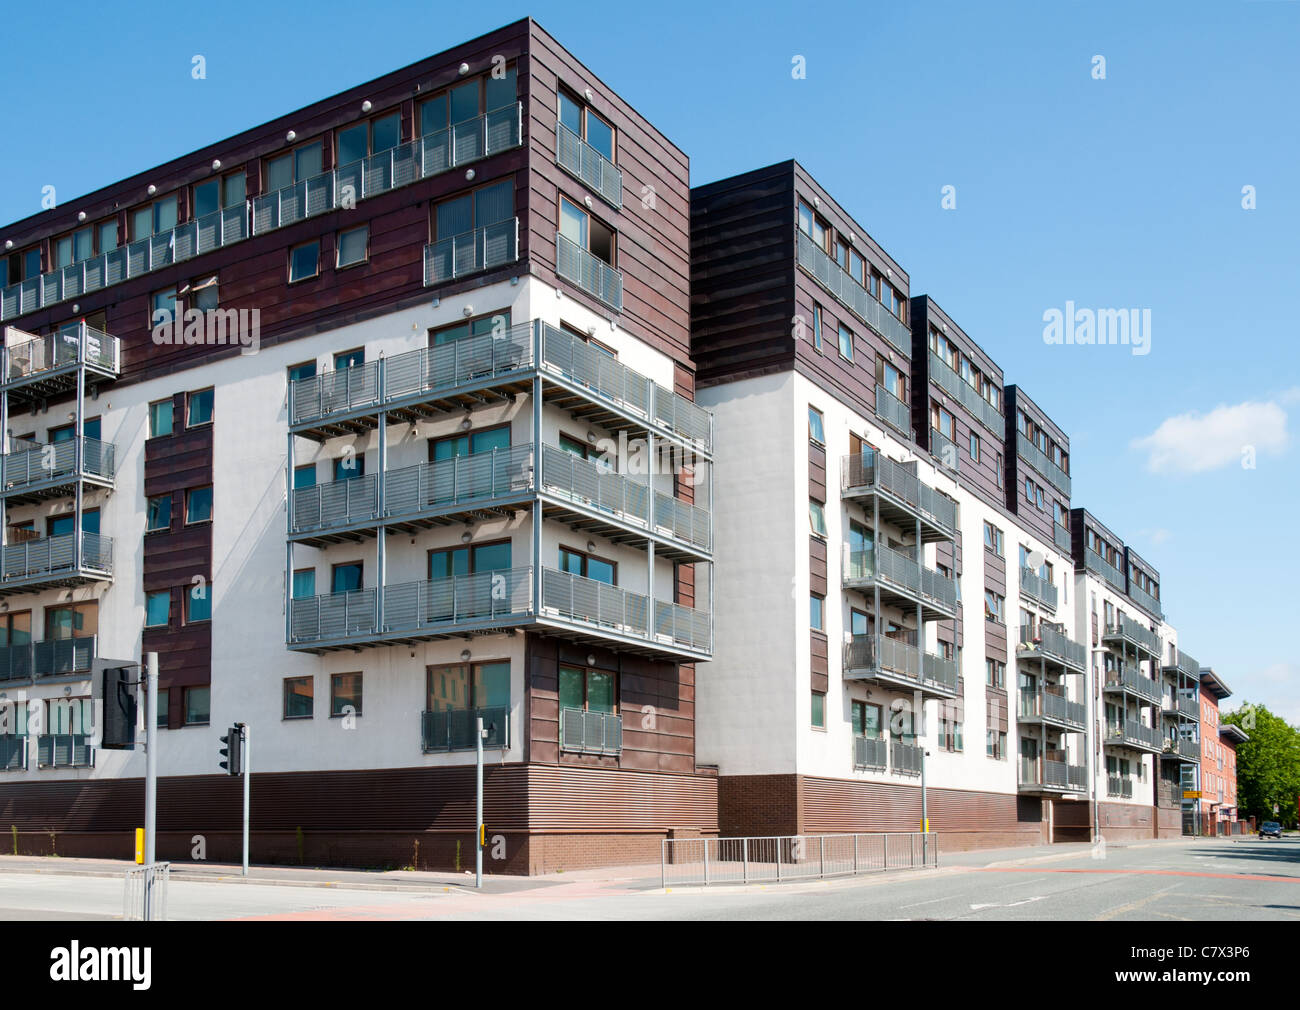 Isaac Way Apartments, Off Every Street, Ancoats, Manchester, England, UK